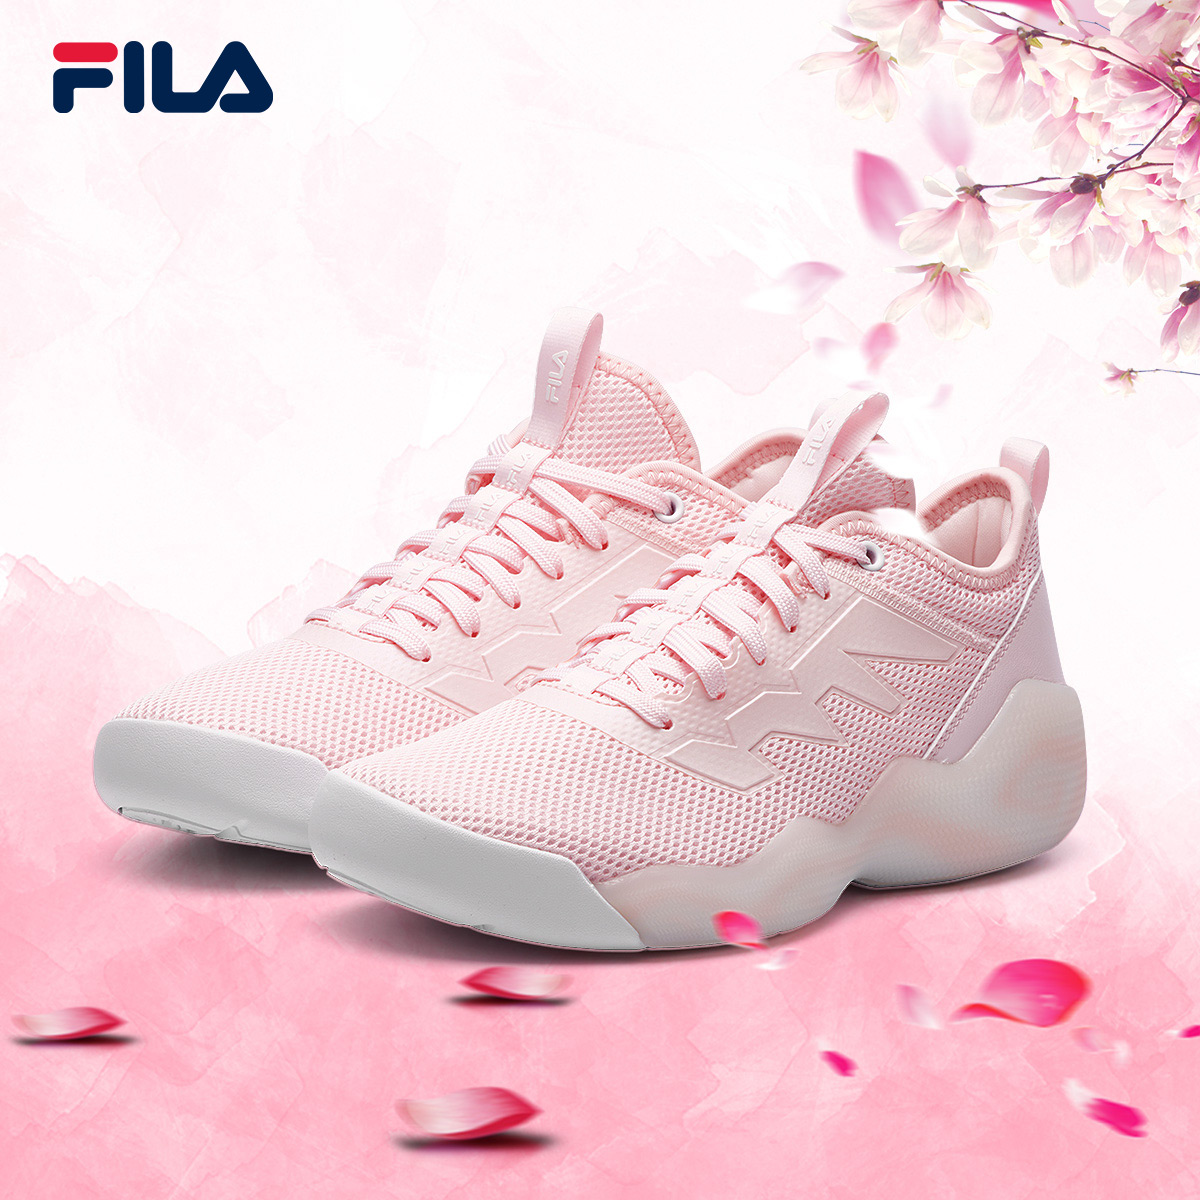 1fila Fei Le Bb Shoes Womens Shoes 2018 New Classic Sports Casual